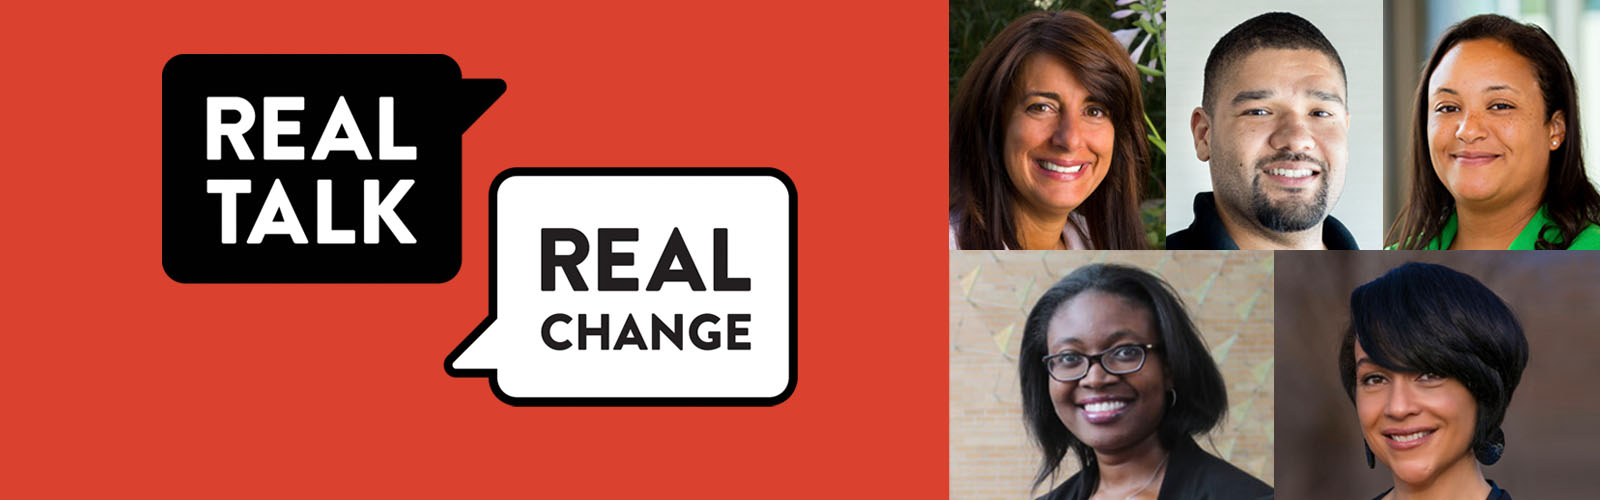 Real Talk for Real Change Advancing Health Hero Image